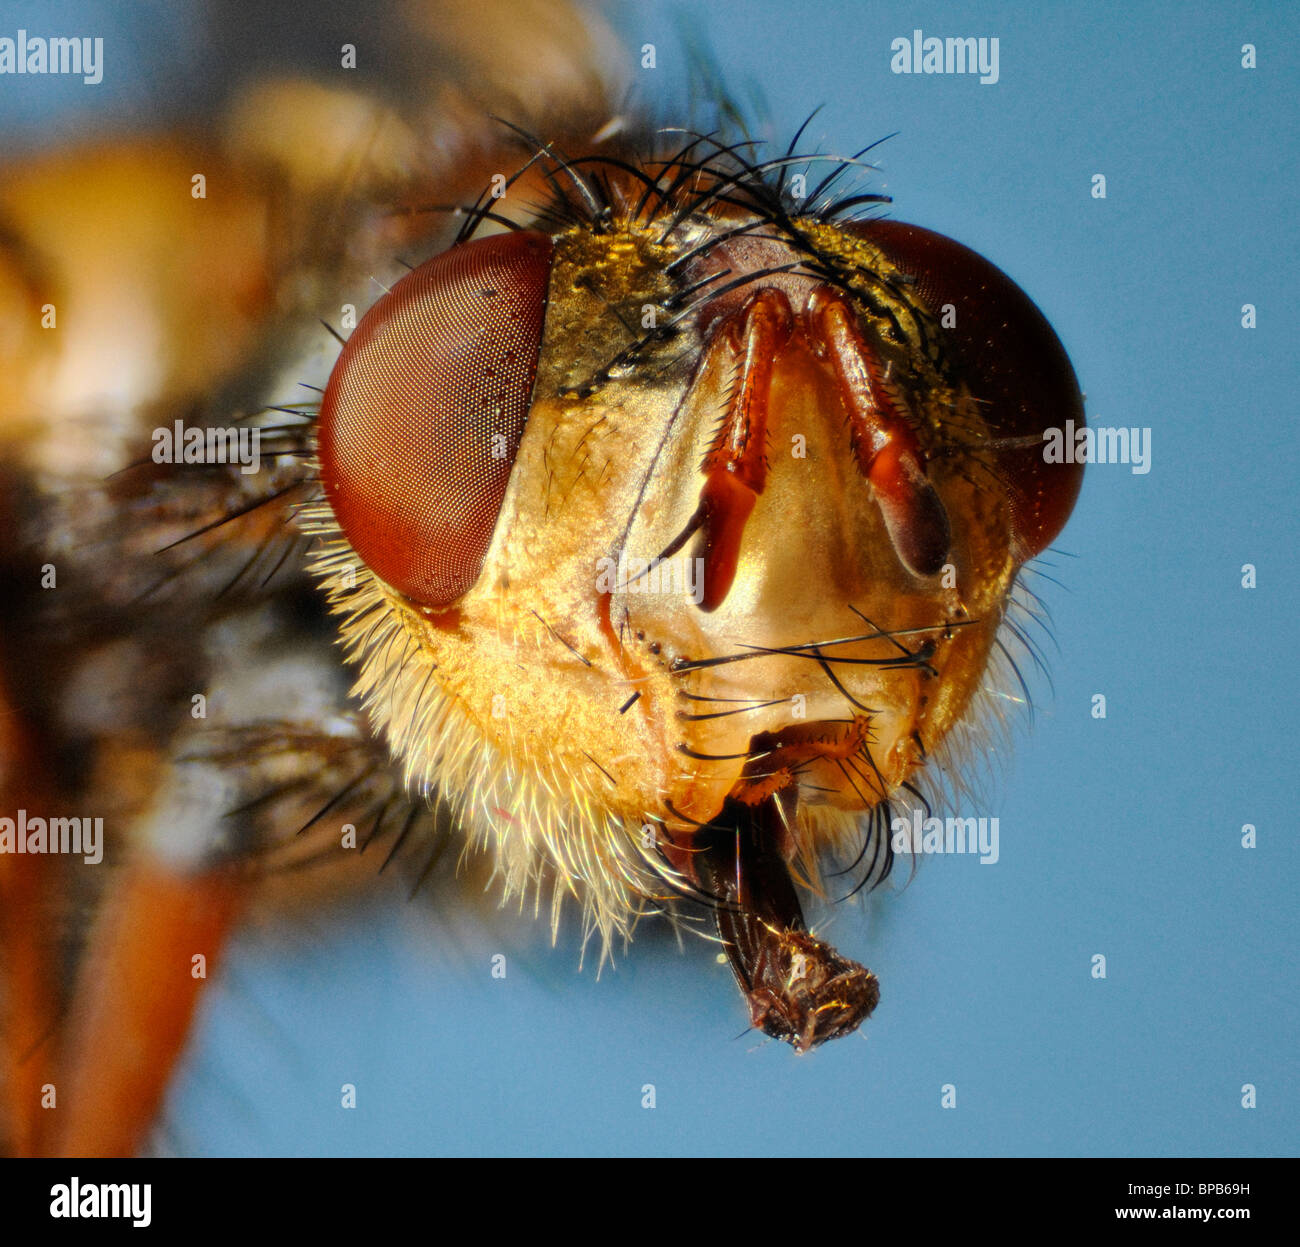 Extreme close up of the face of the fly Larvaevora fera, family Tachinidae, showing extended mouthparts Stock Photo